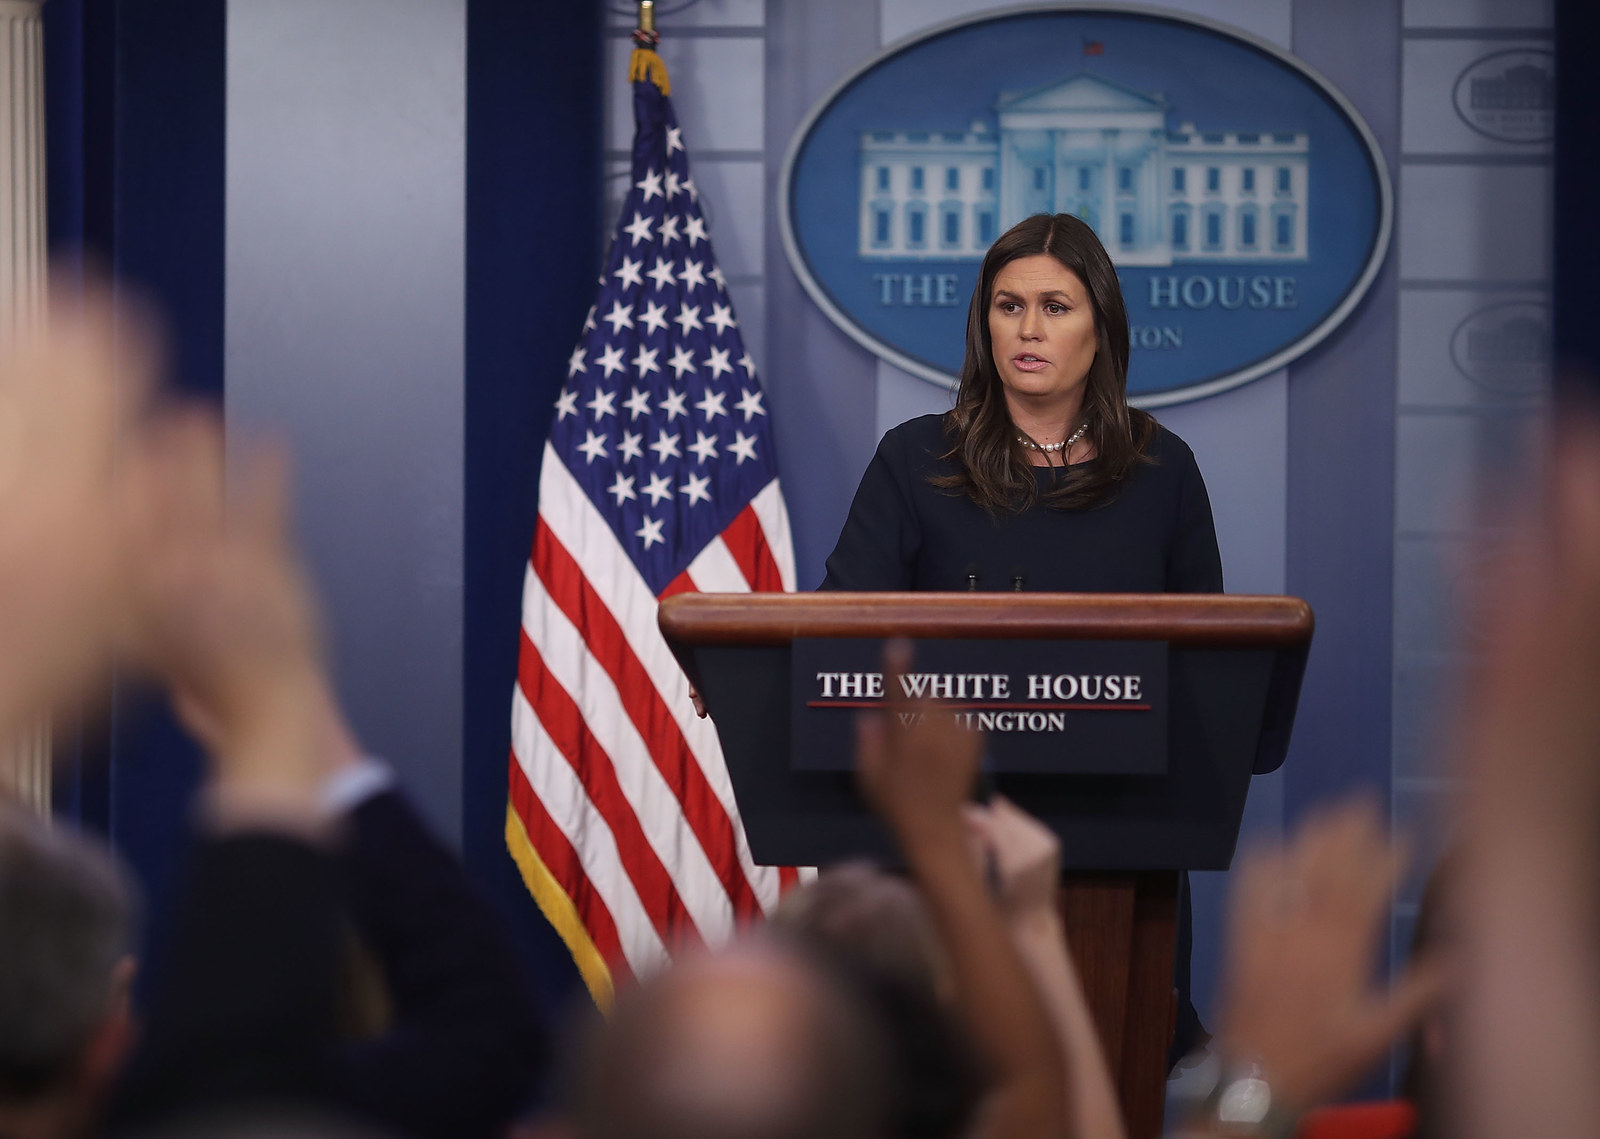 Sarah Sanders Told Mueller's Team Her Comments About Why James Comey Was Fired Weren't Based On Anything